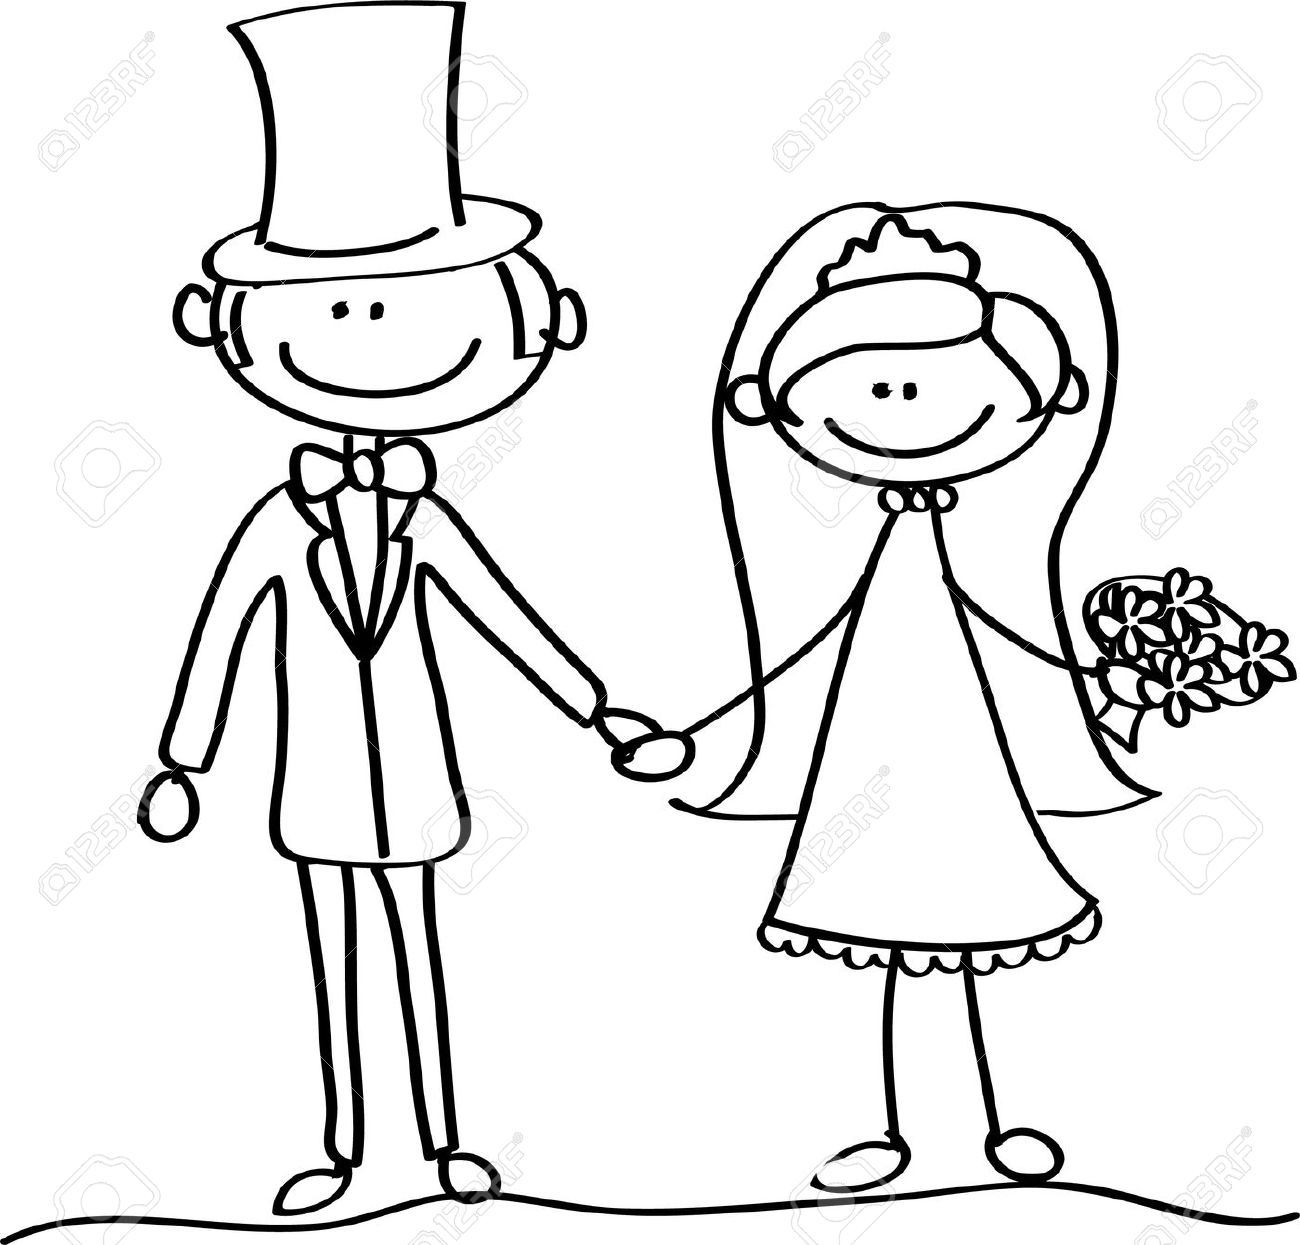 Bride and groom clipart - Clipground